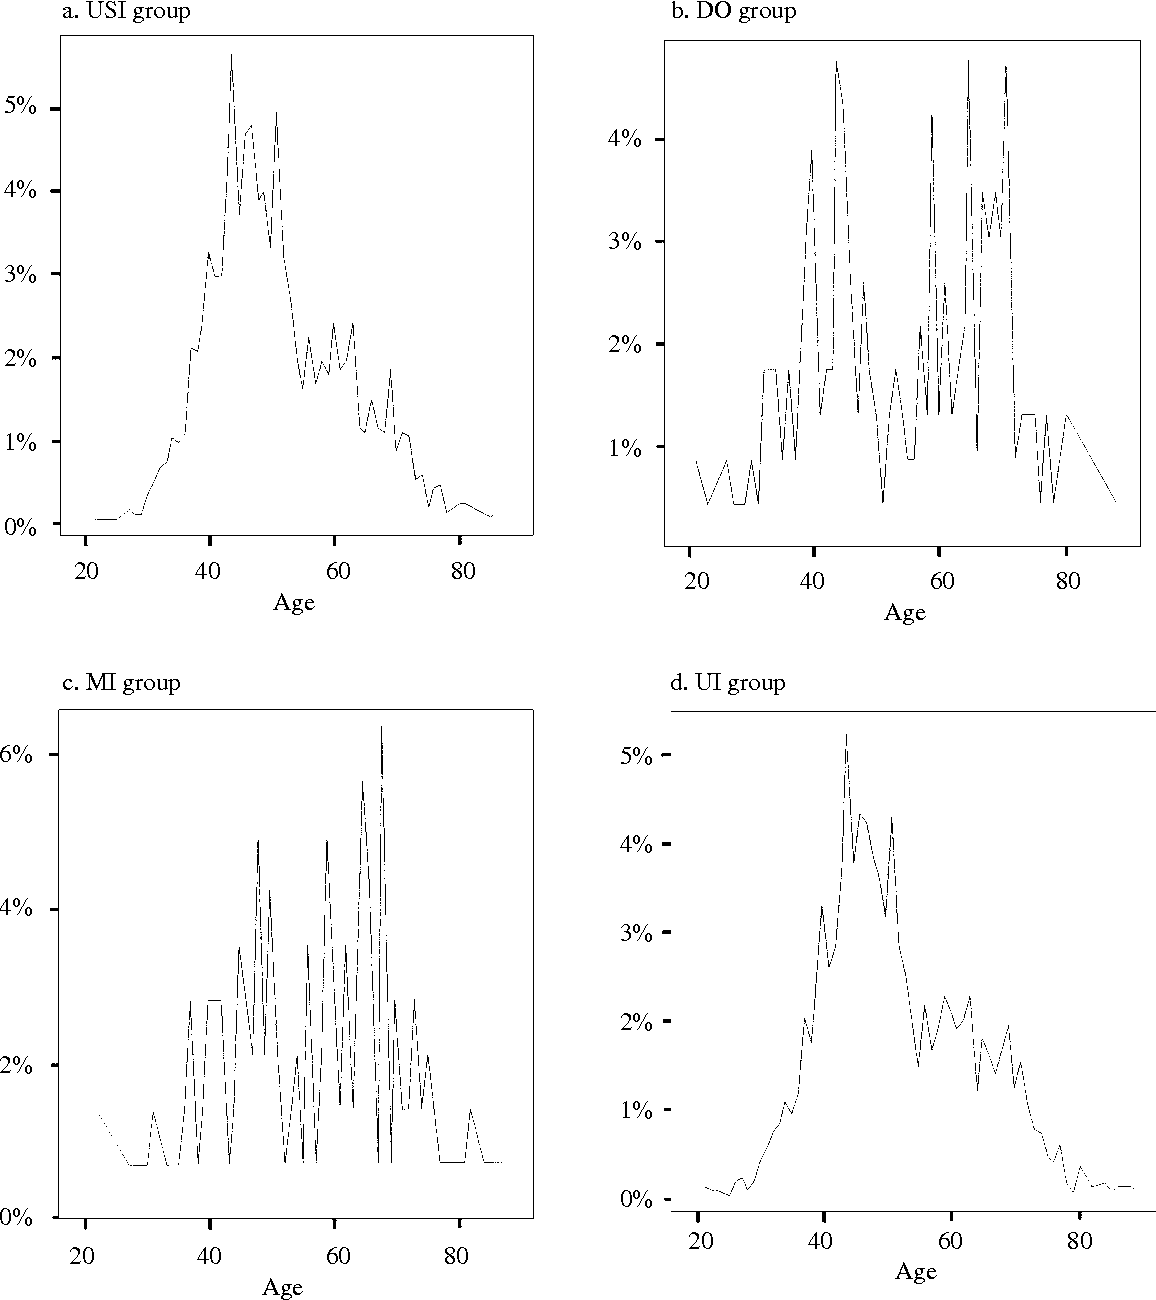 Fig. 1 The age distribution in the urodynamic diagnosis groups.